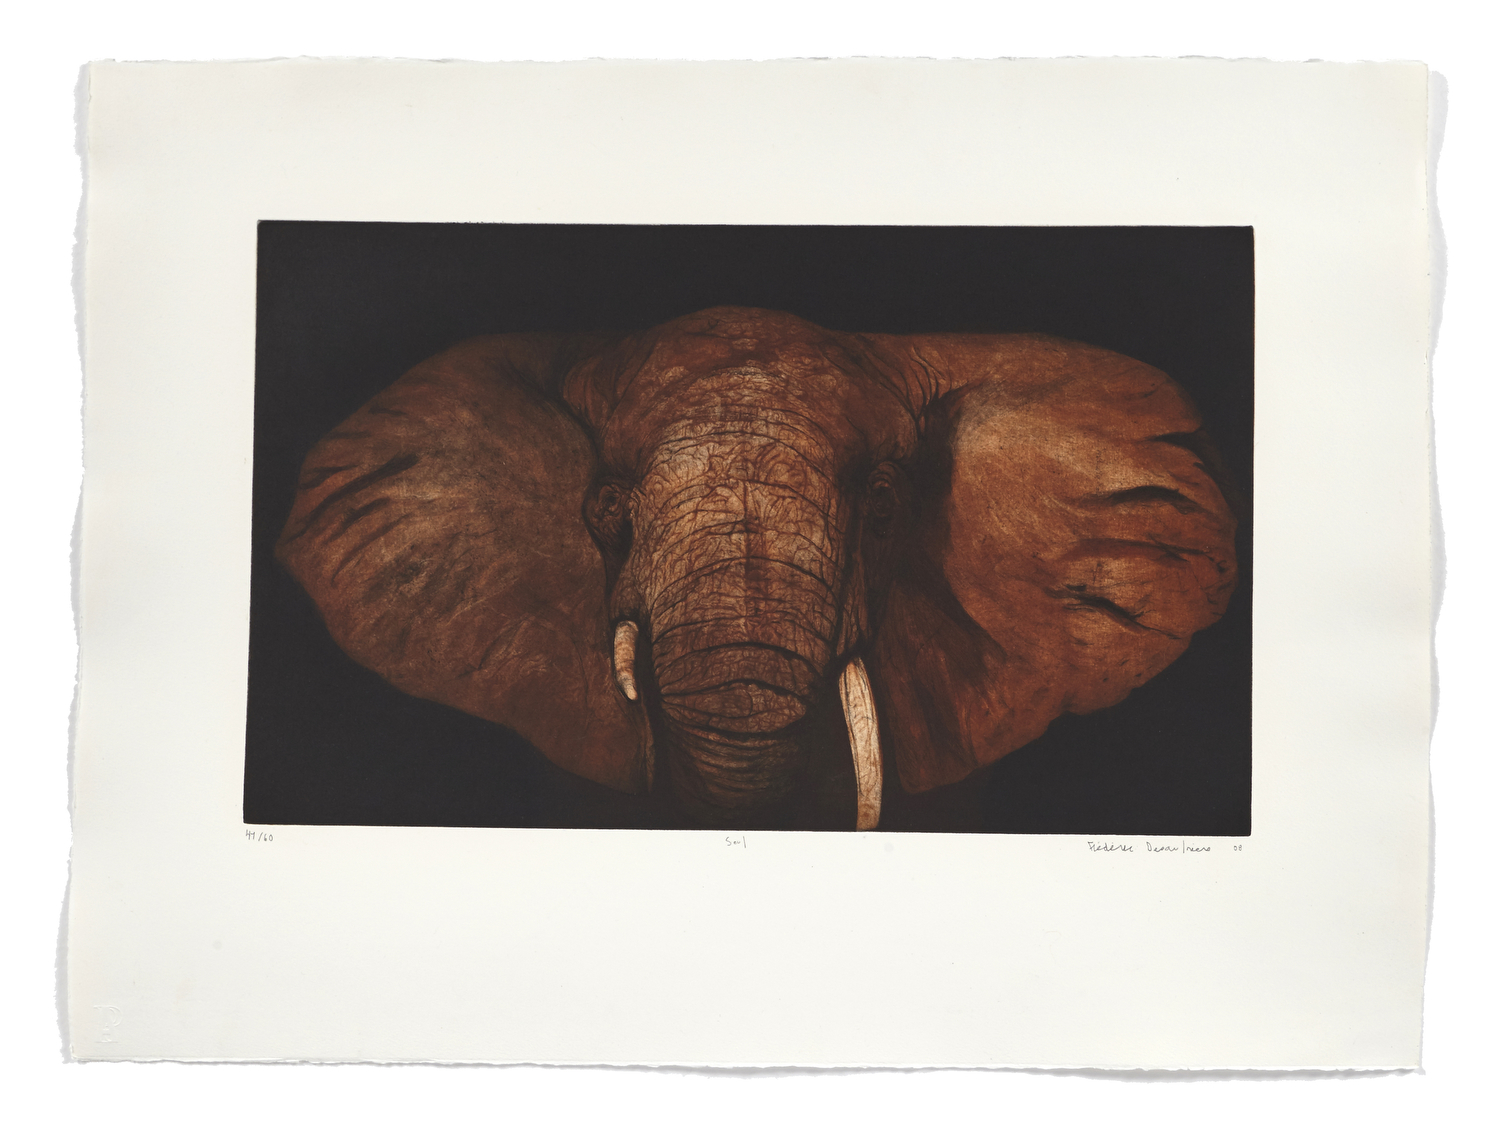 Seul   2007 | 56 x 76cm | Aquatint, etching and drypoint | 60 prints | Editor Atelier-Galerie A. Piroir